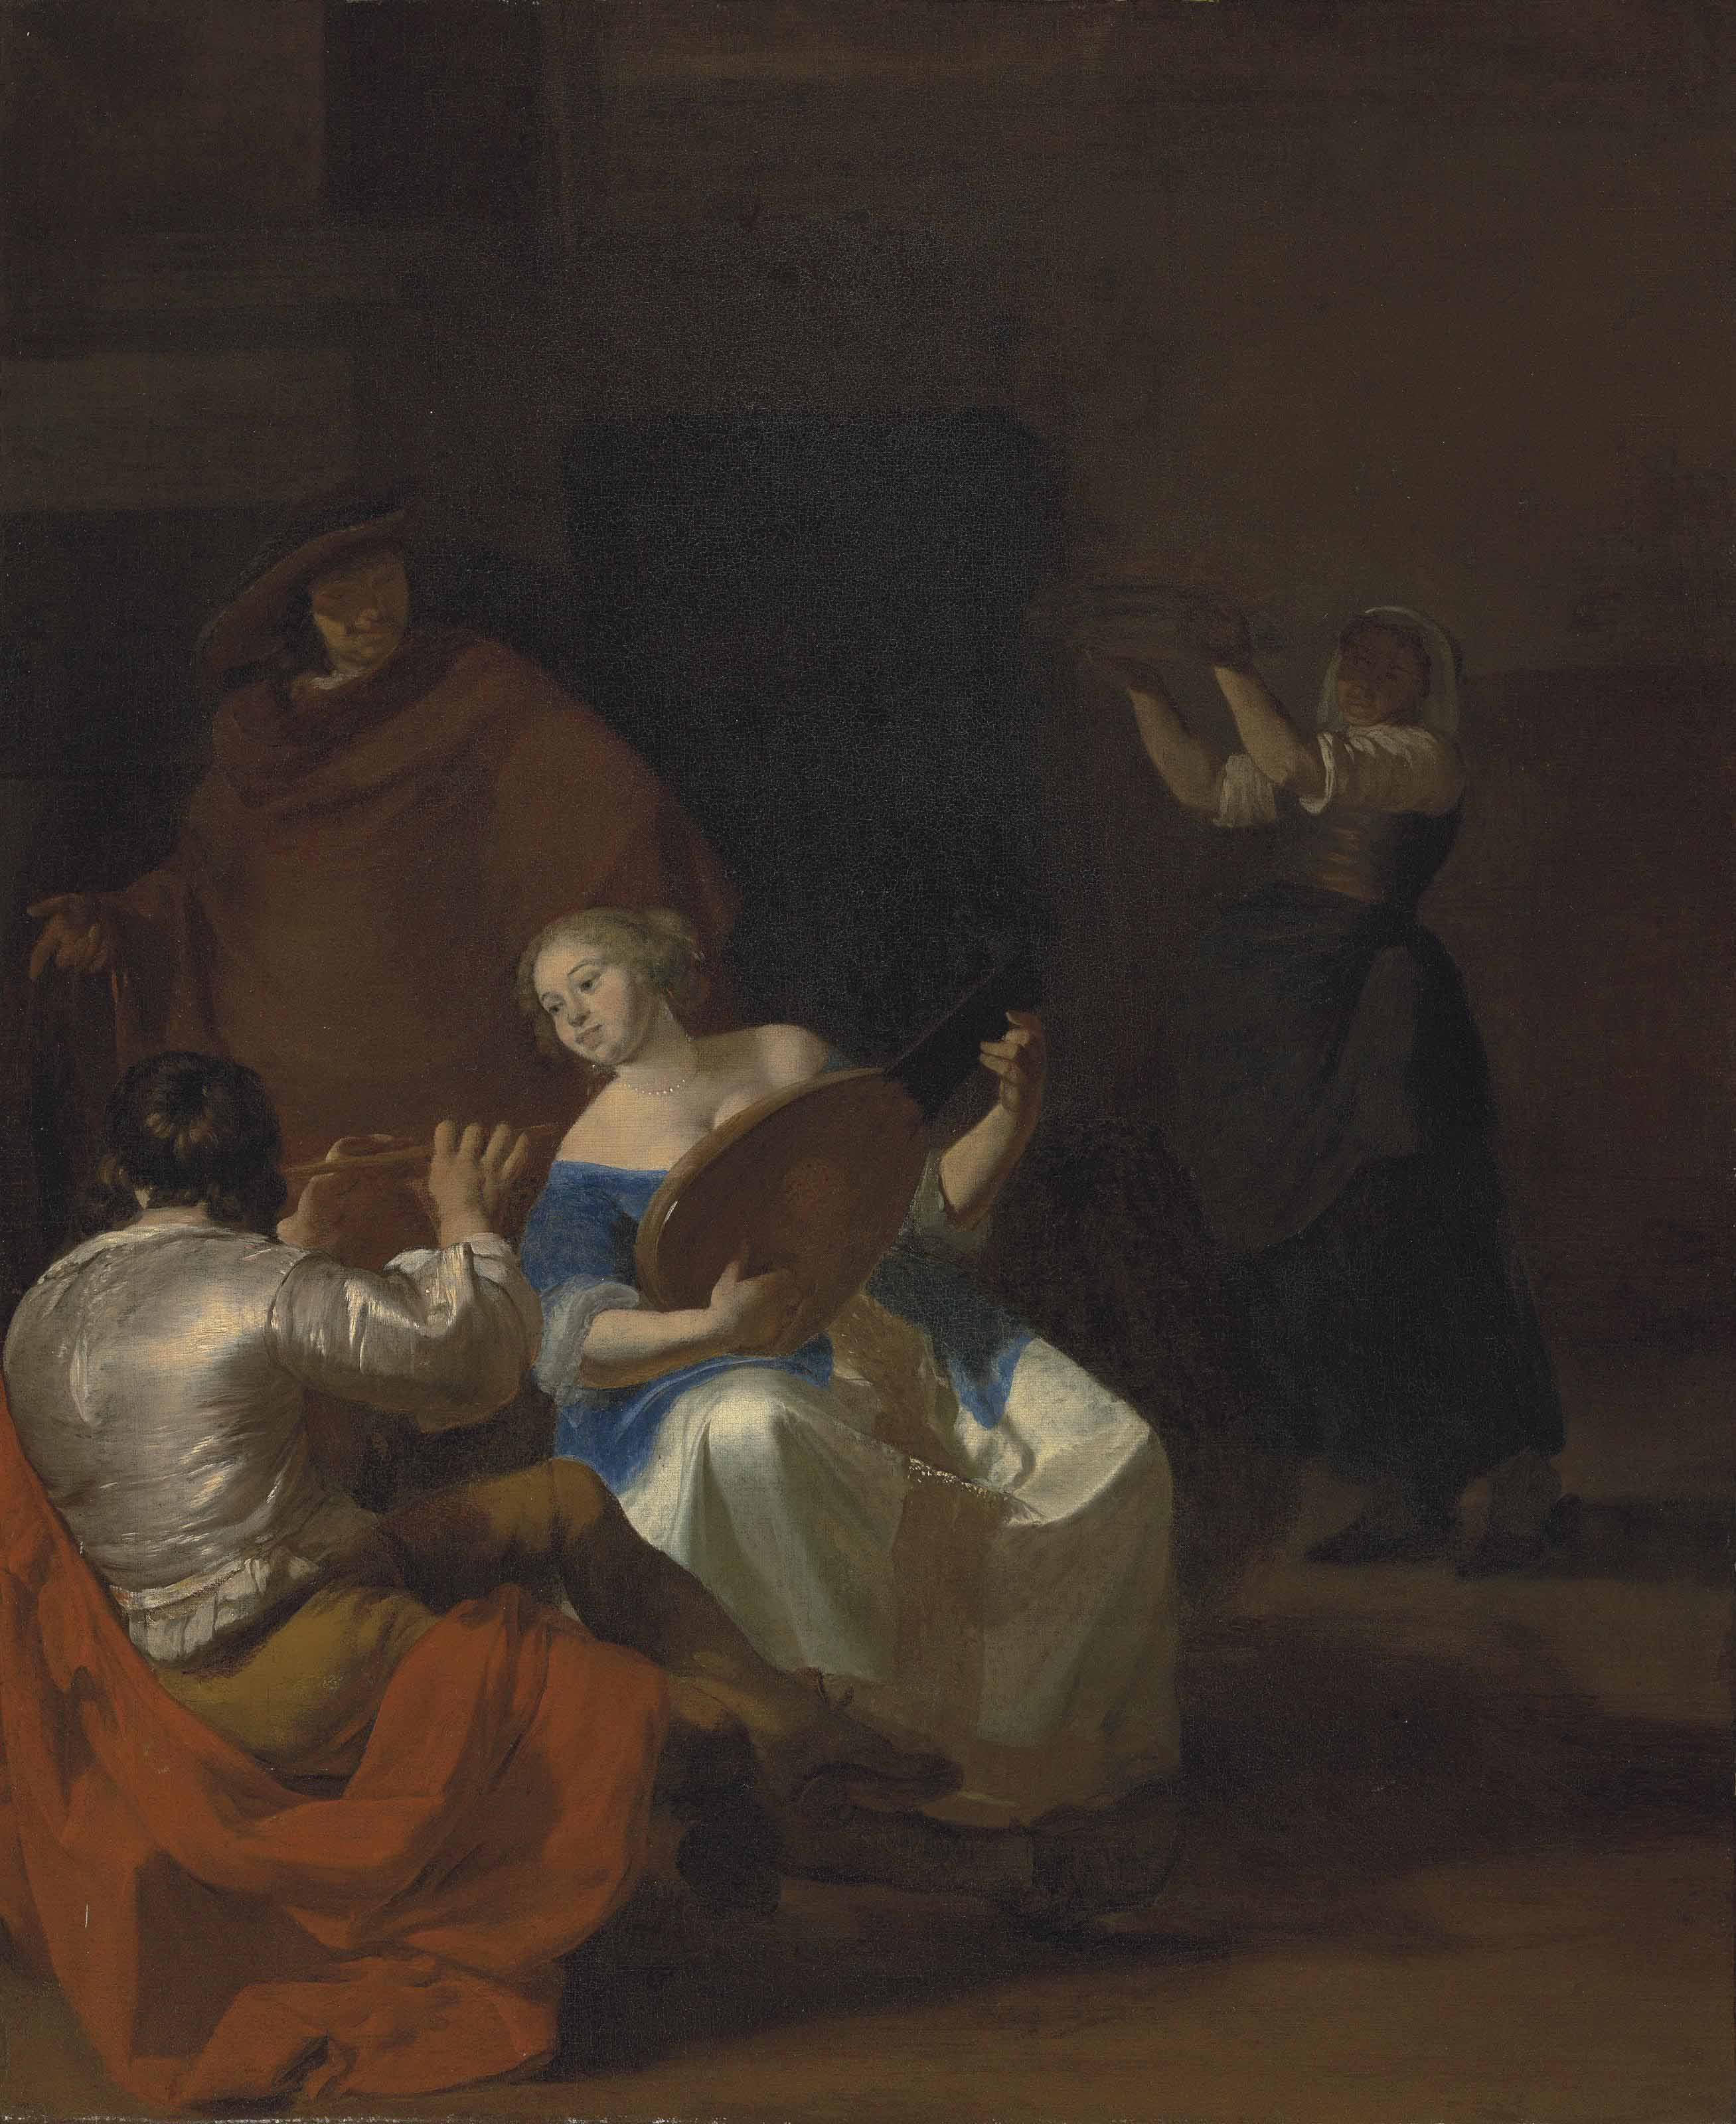 An interior with an elegant woman playing a lute and a man playing a flute, a maid by the fireplace beyond